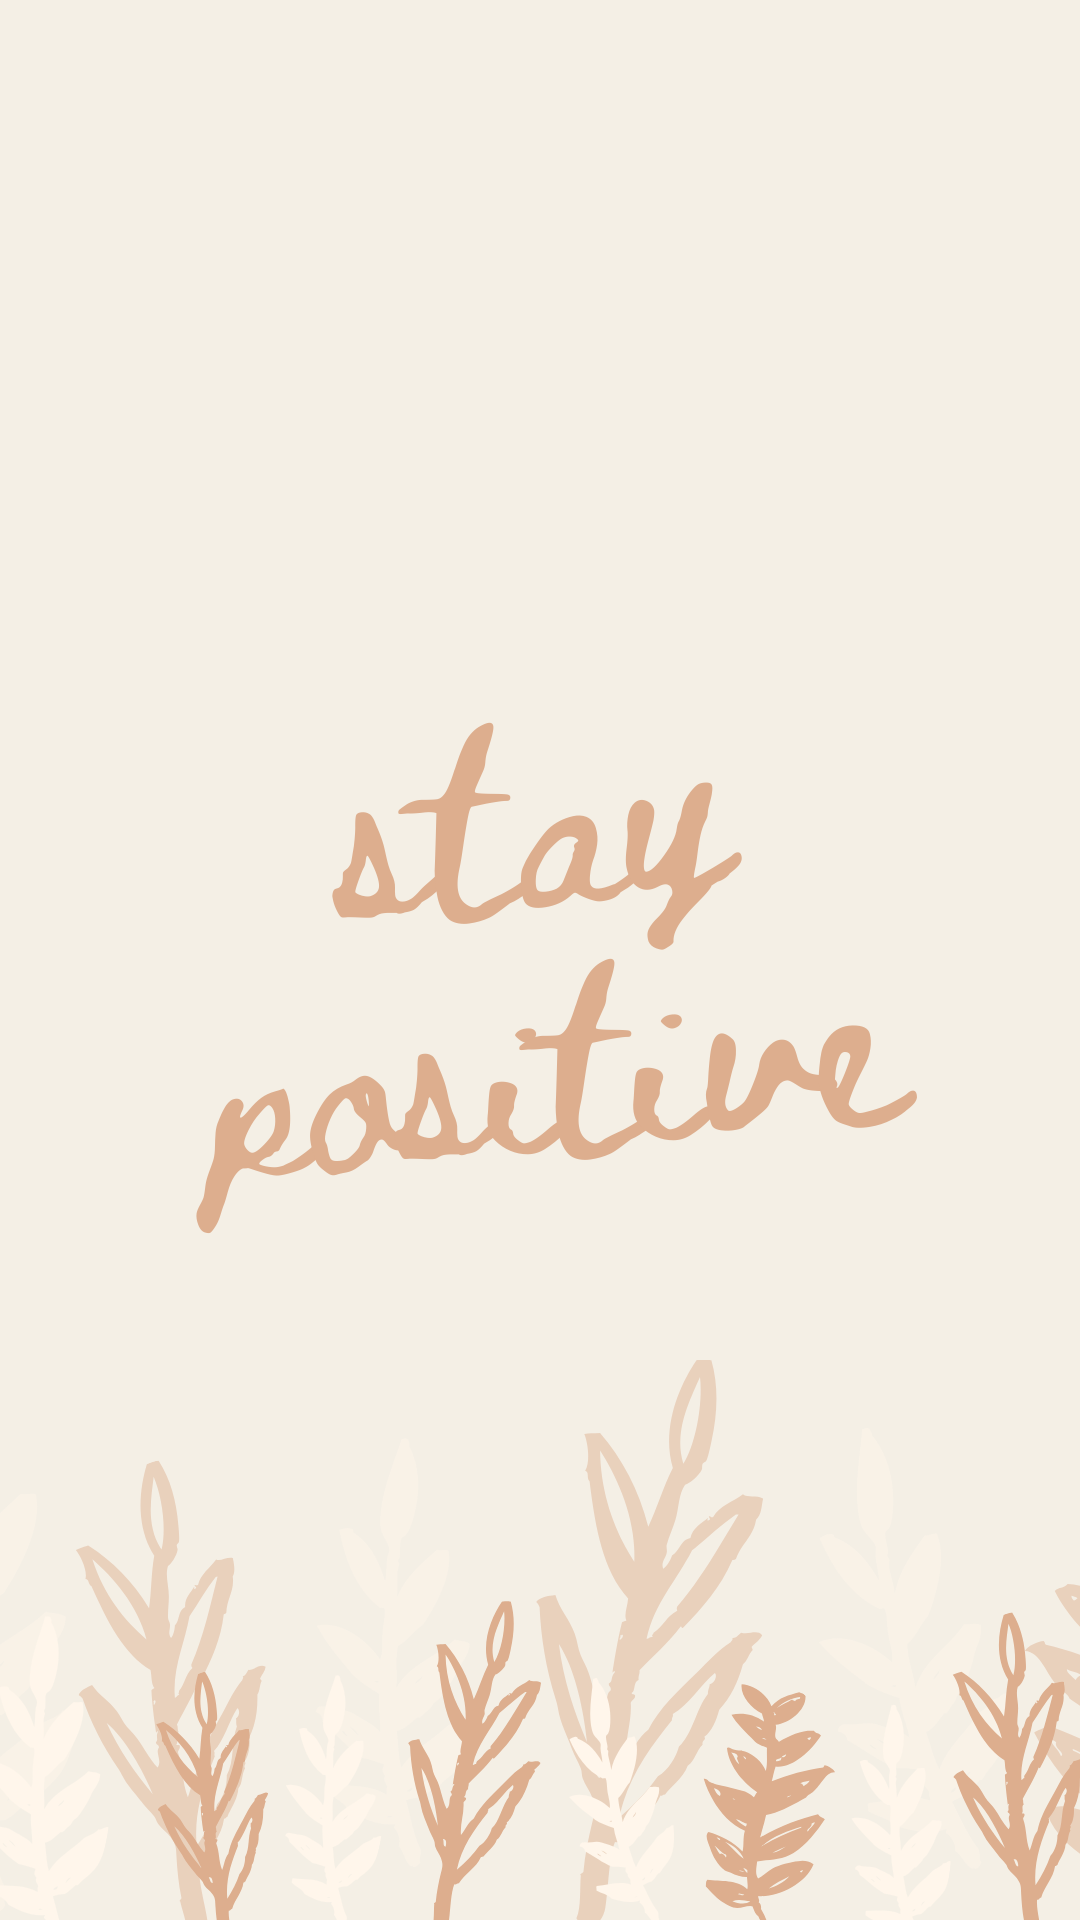 Free Phone Wallpapers | Marley Sue